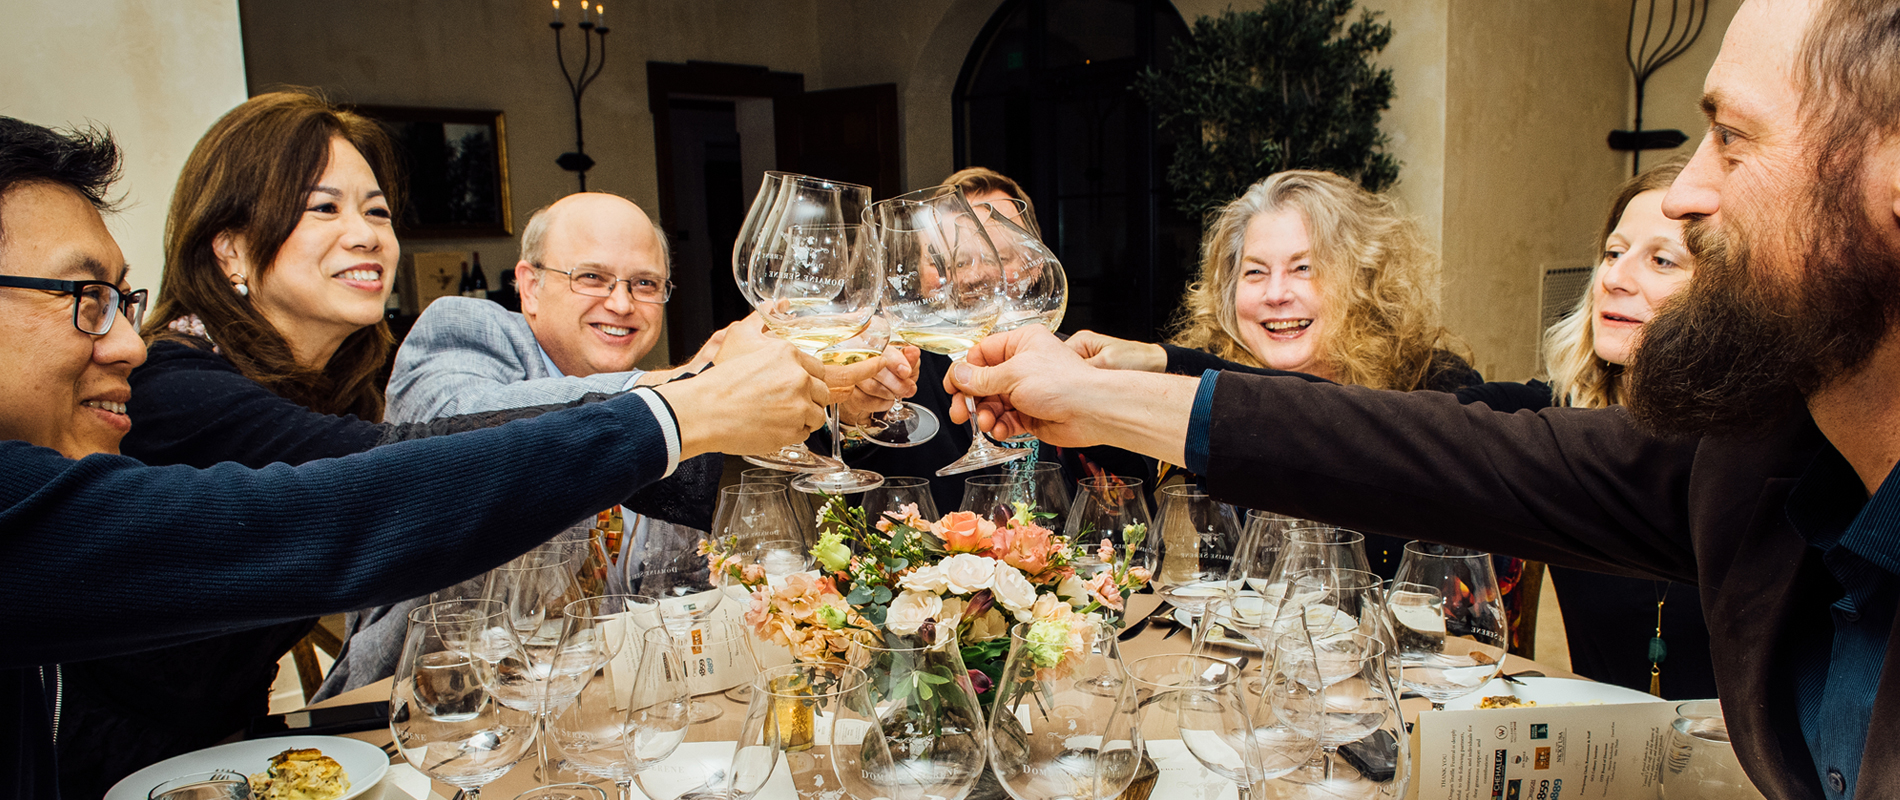 People toasting wine glasses over dinner